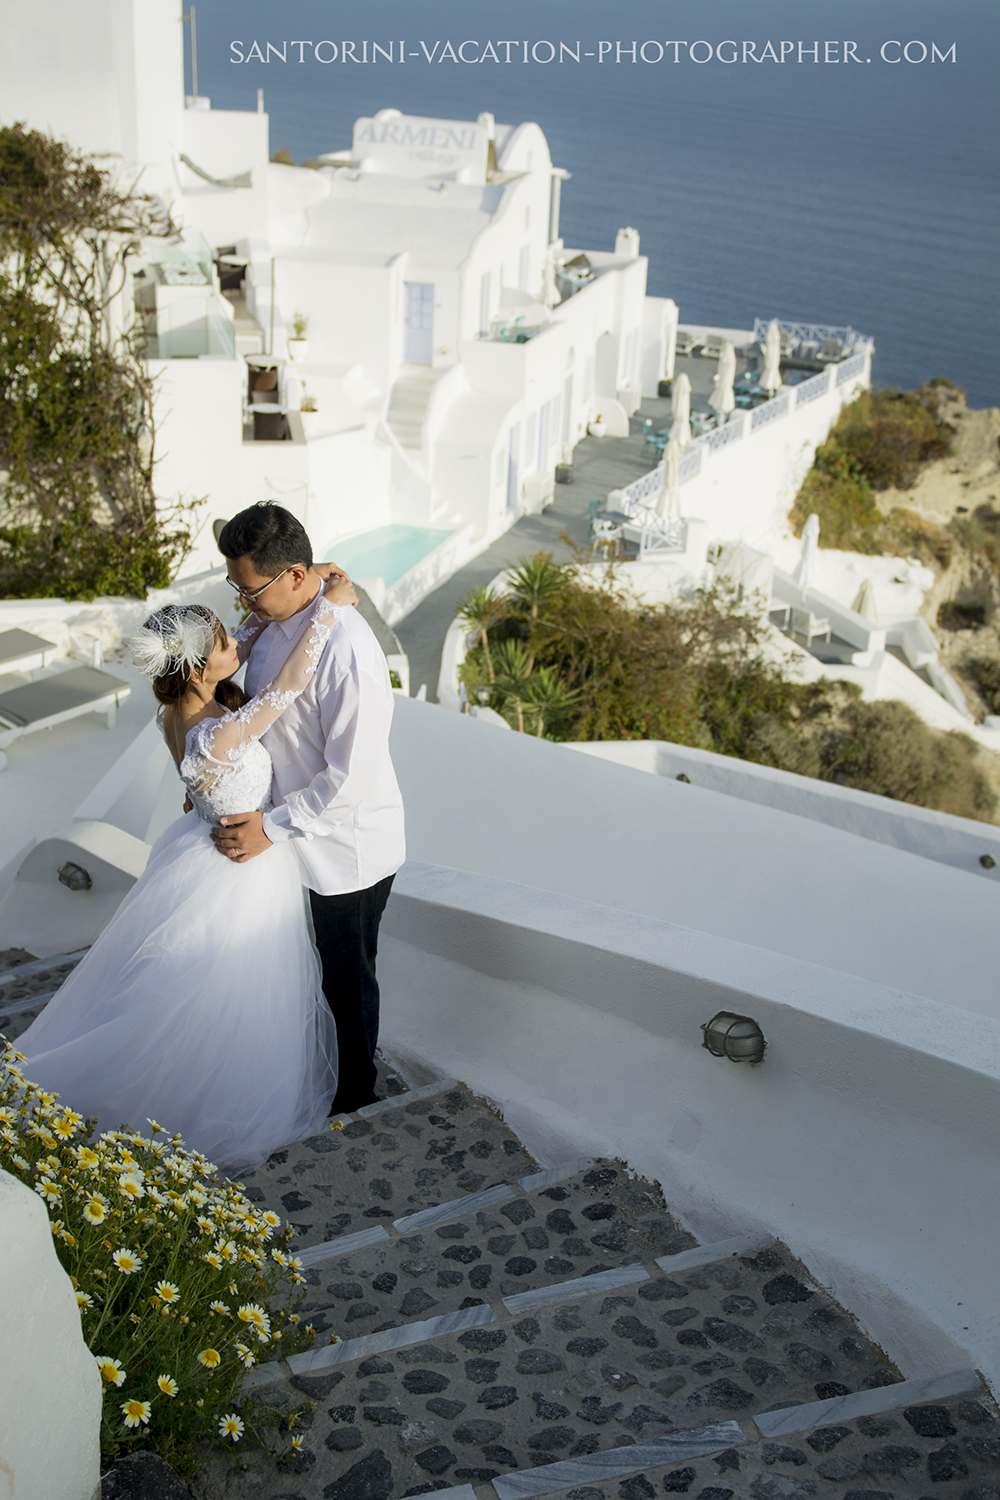 Santorini photo shoot.